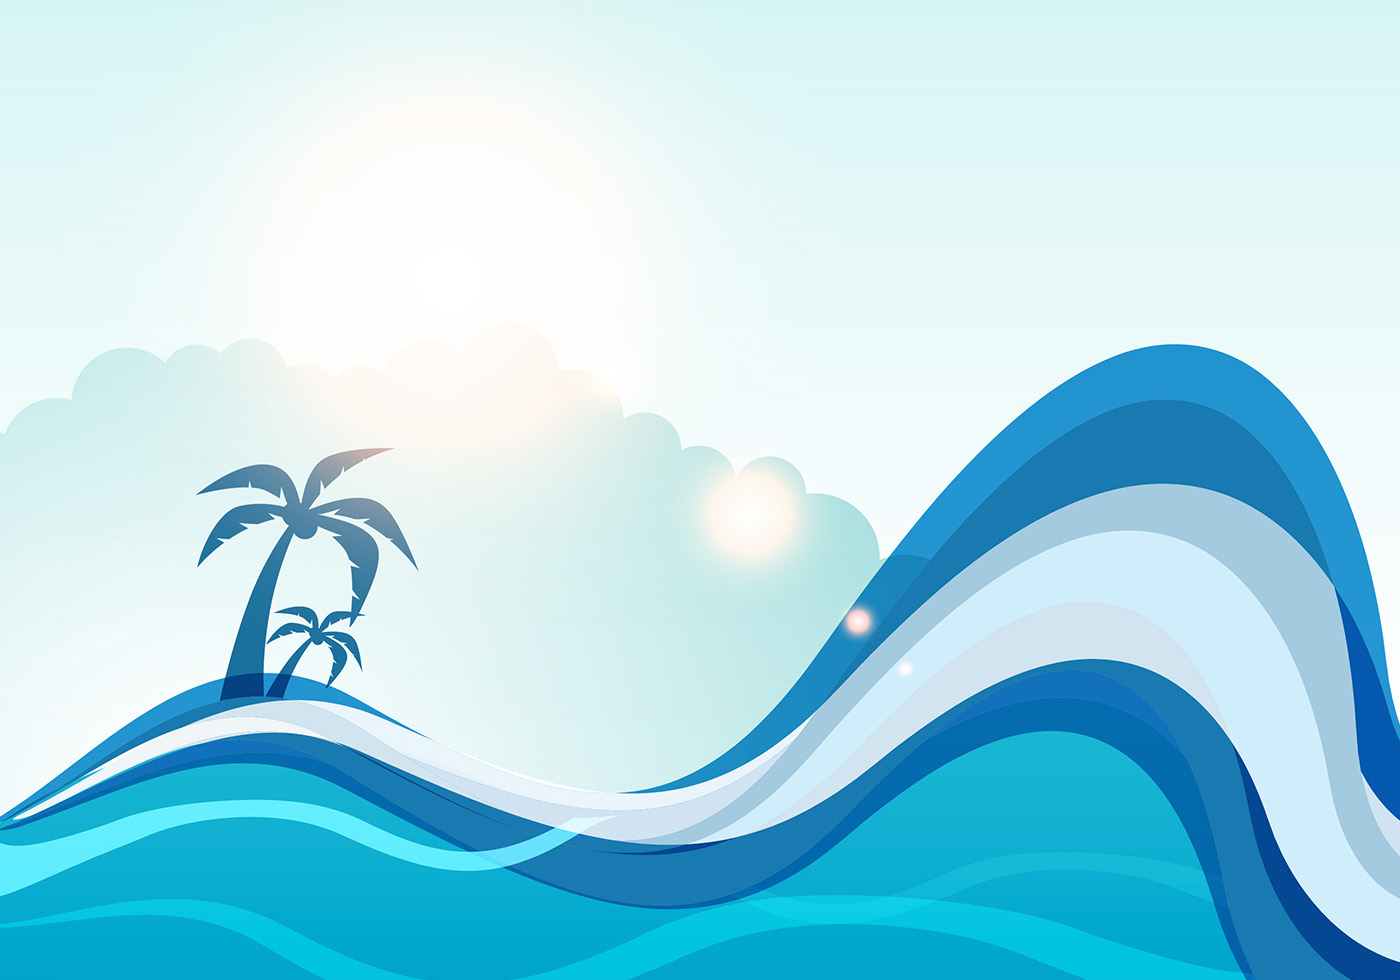 summer sea wave vector background download free vector surfer clipart images Surfer Silhouette Clip Art